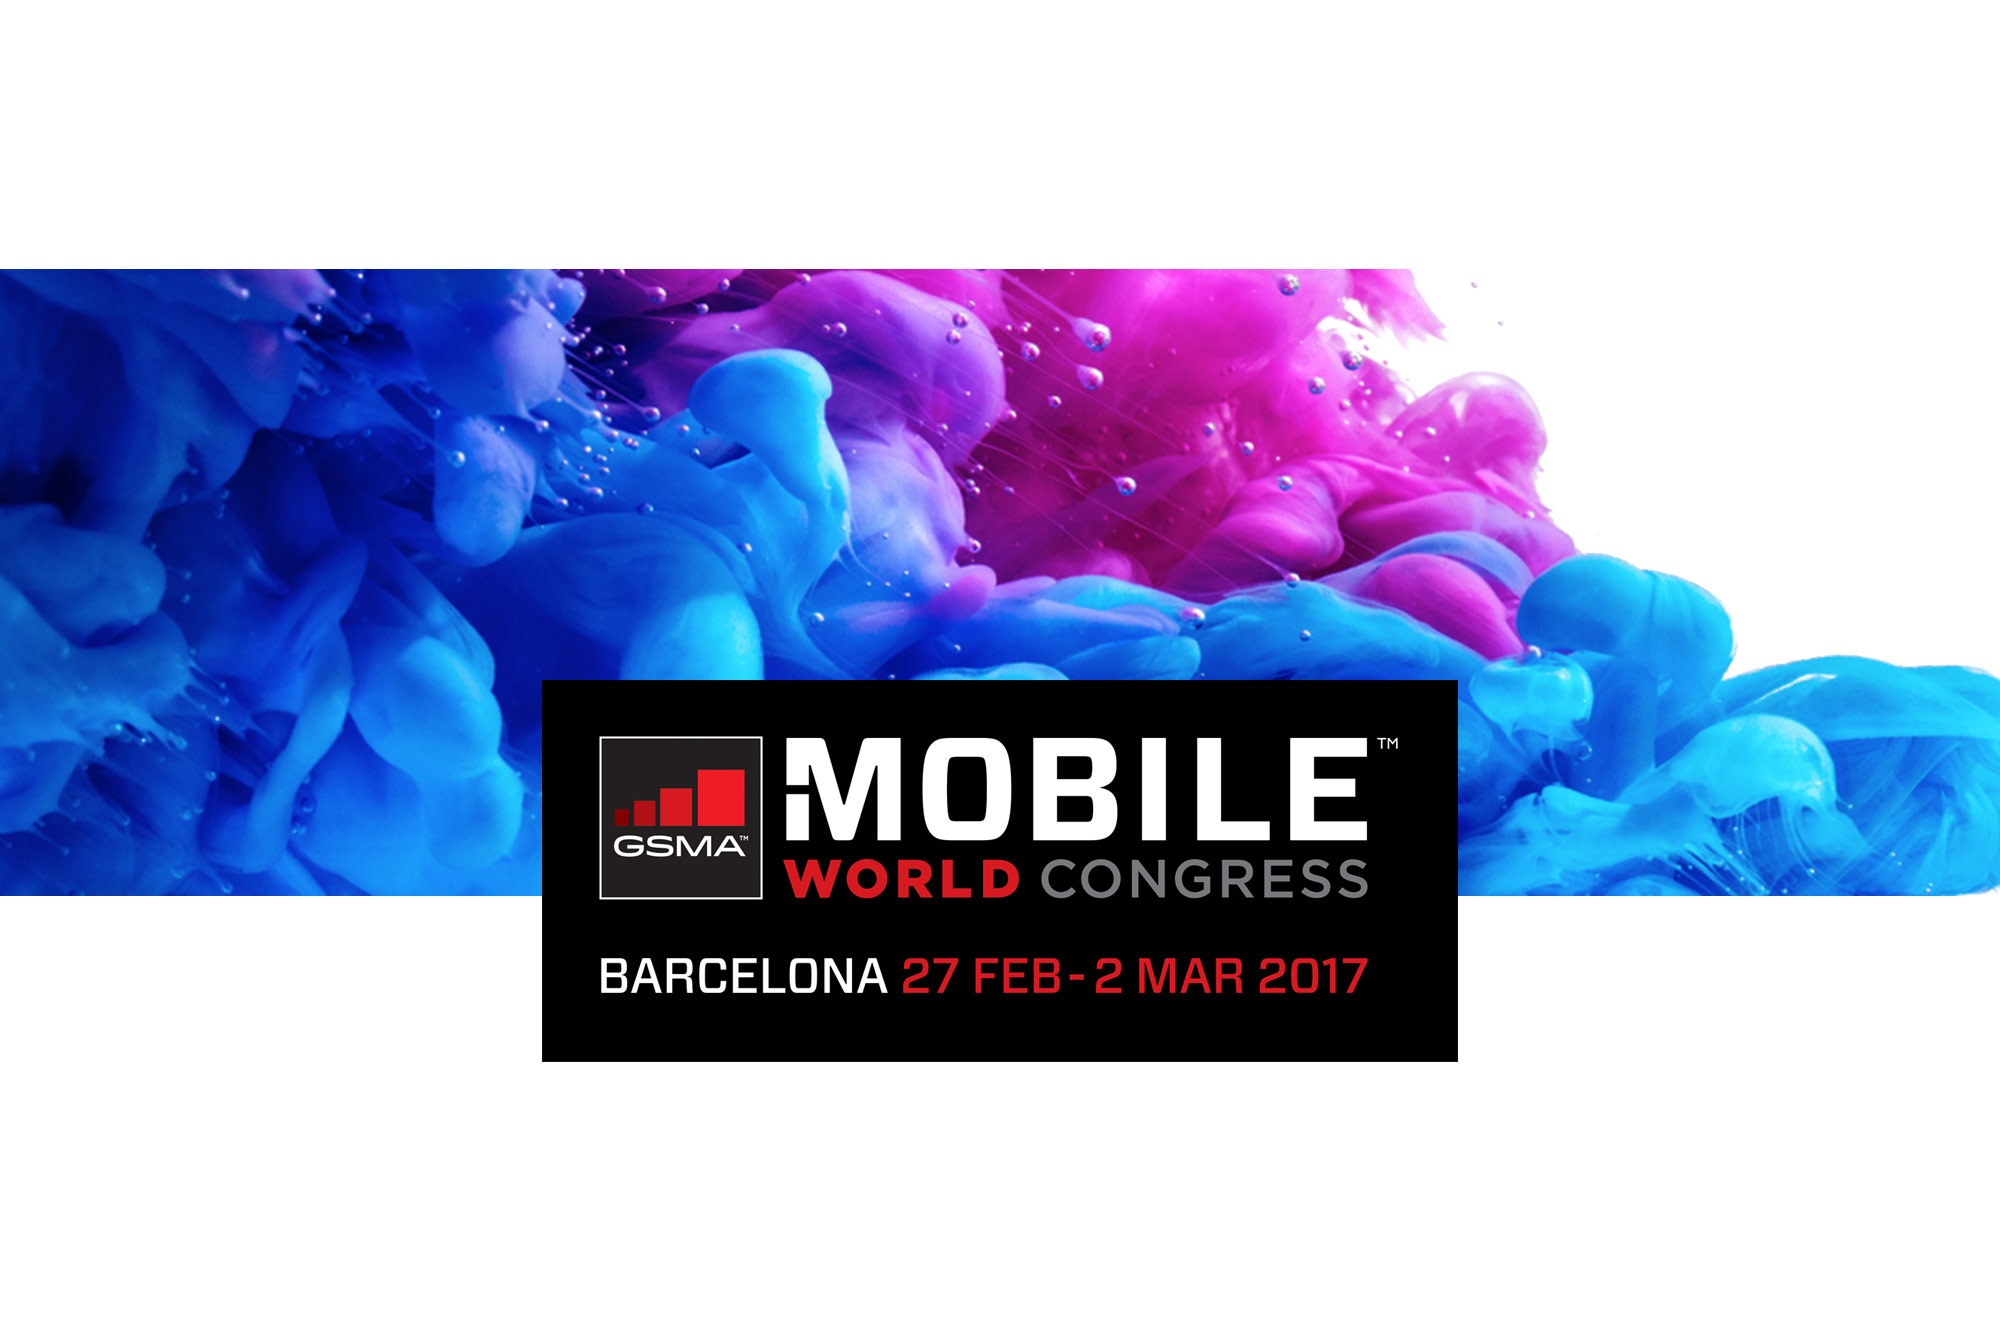 MobiWeb at MWC 2017, the mobile industry event